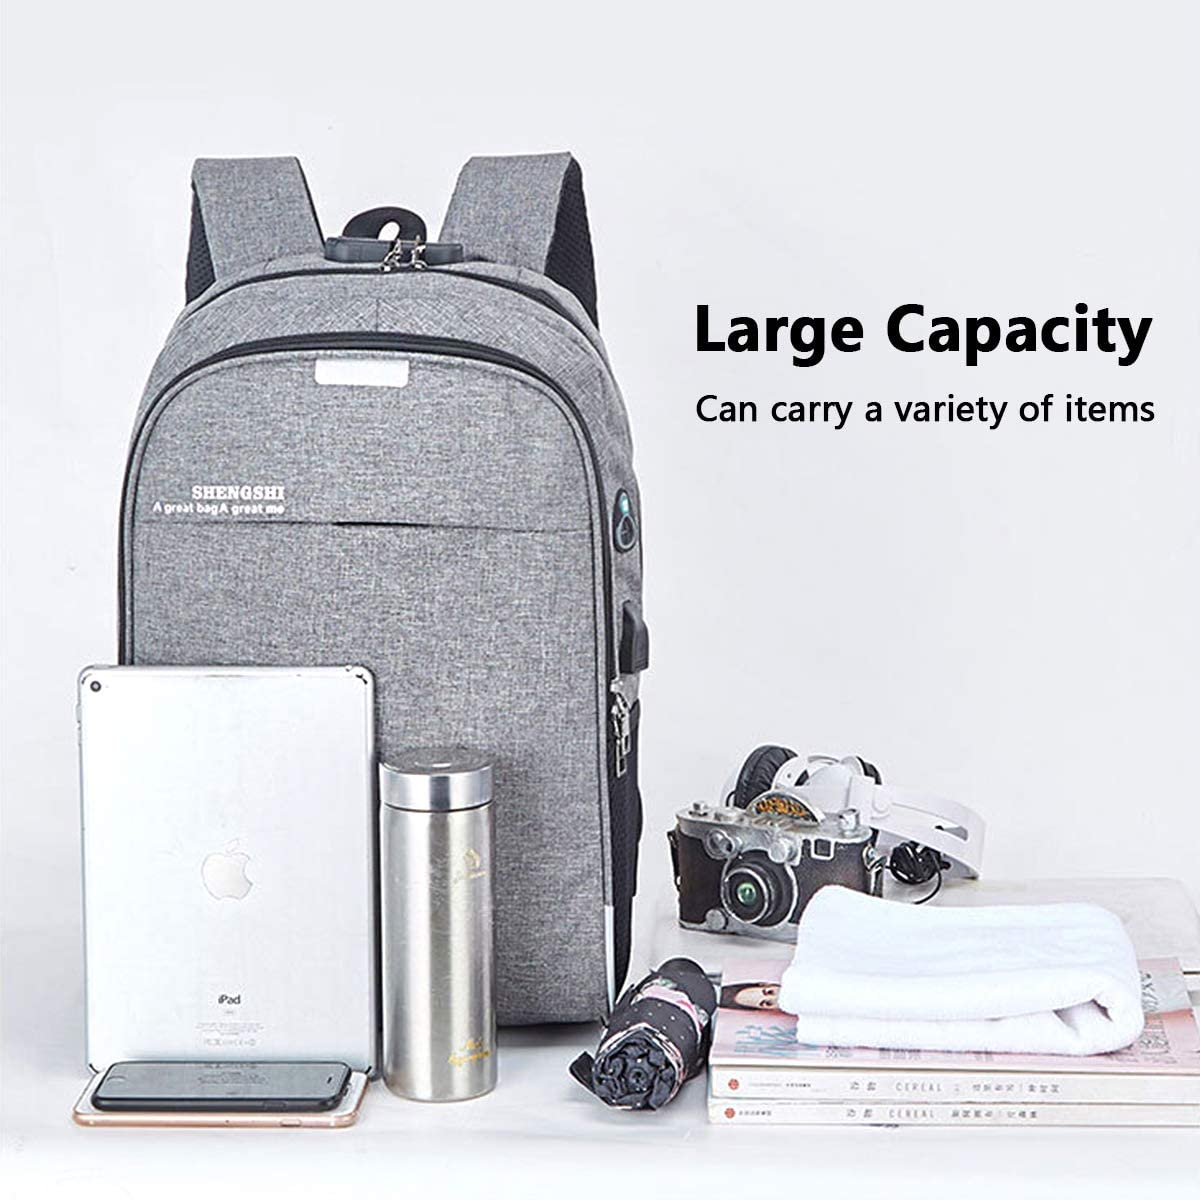 Black ASEOK Anti-Theft Backpack,Backpack with USB Charger Port /& Headphone Port /& Lock,Anti-Theft Water Resistant College School Computer Backpack Fits for Men//Women 15.6 Inch Laptop